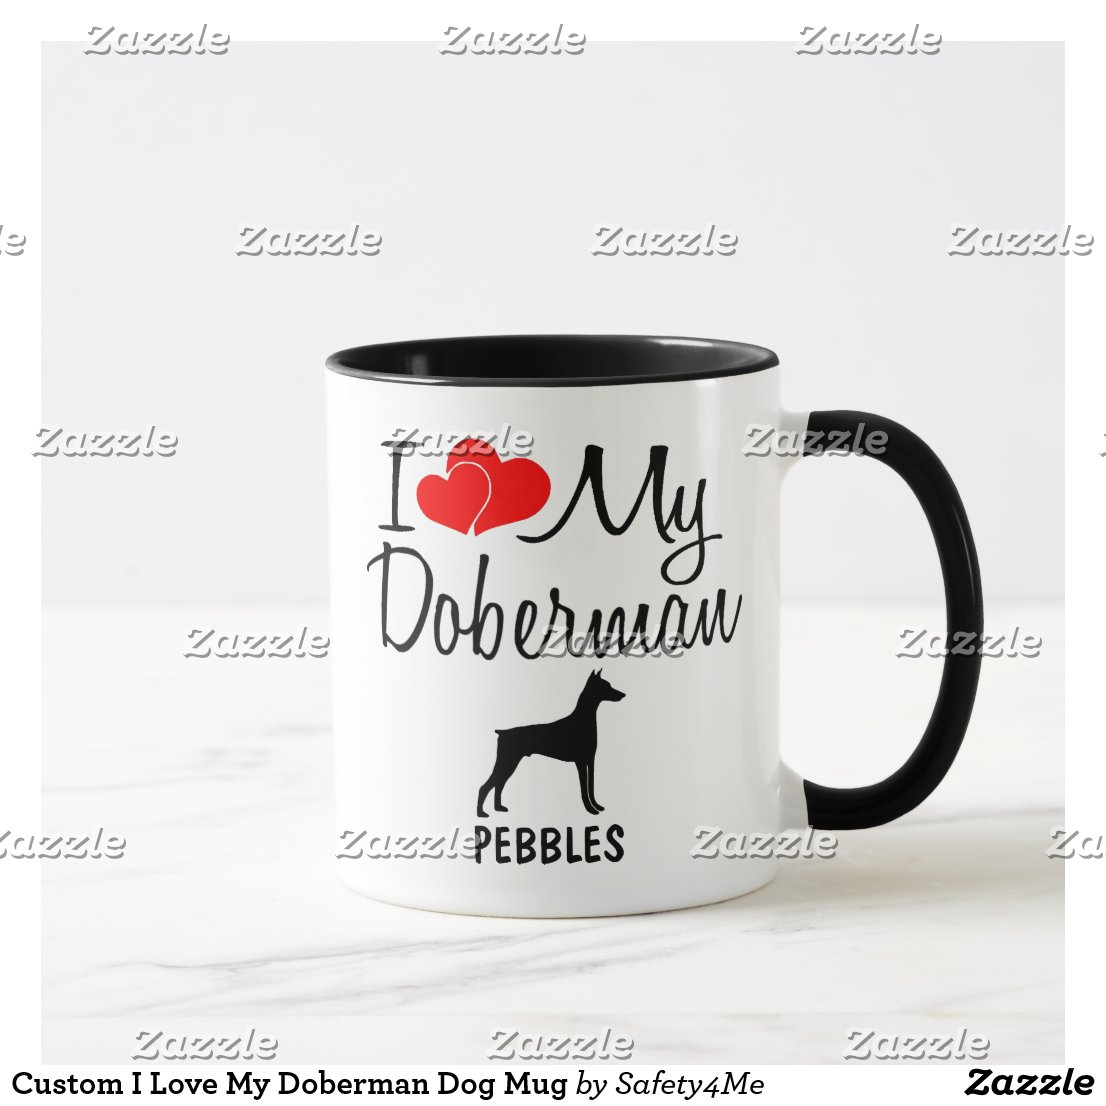 Custom I Love My Doberman Dog Mug